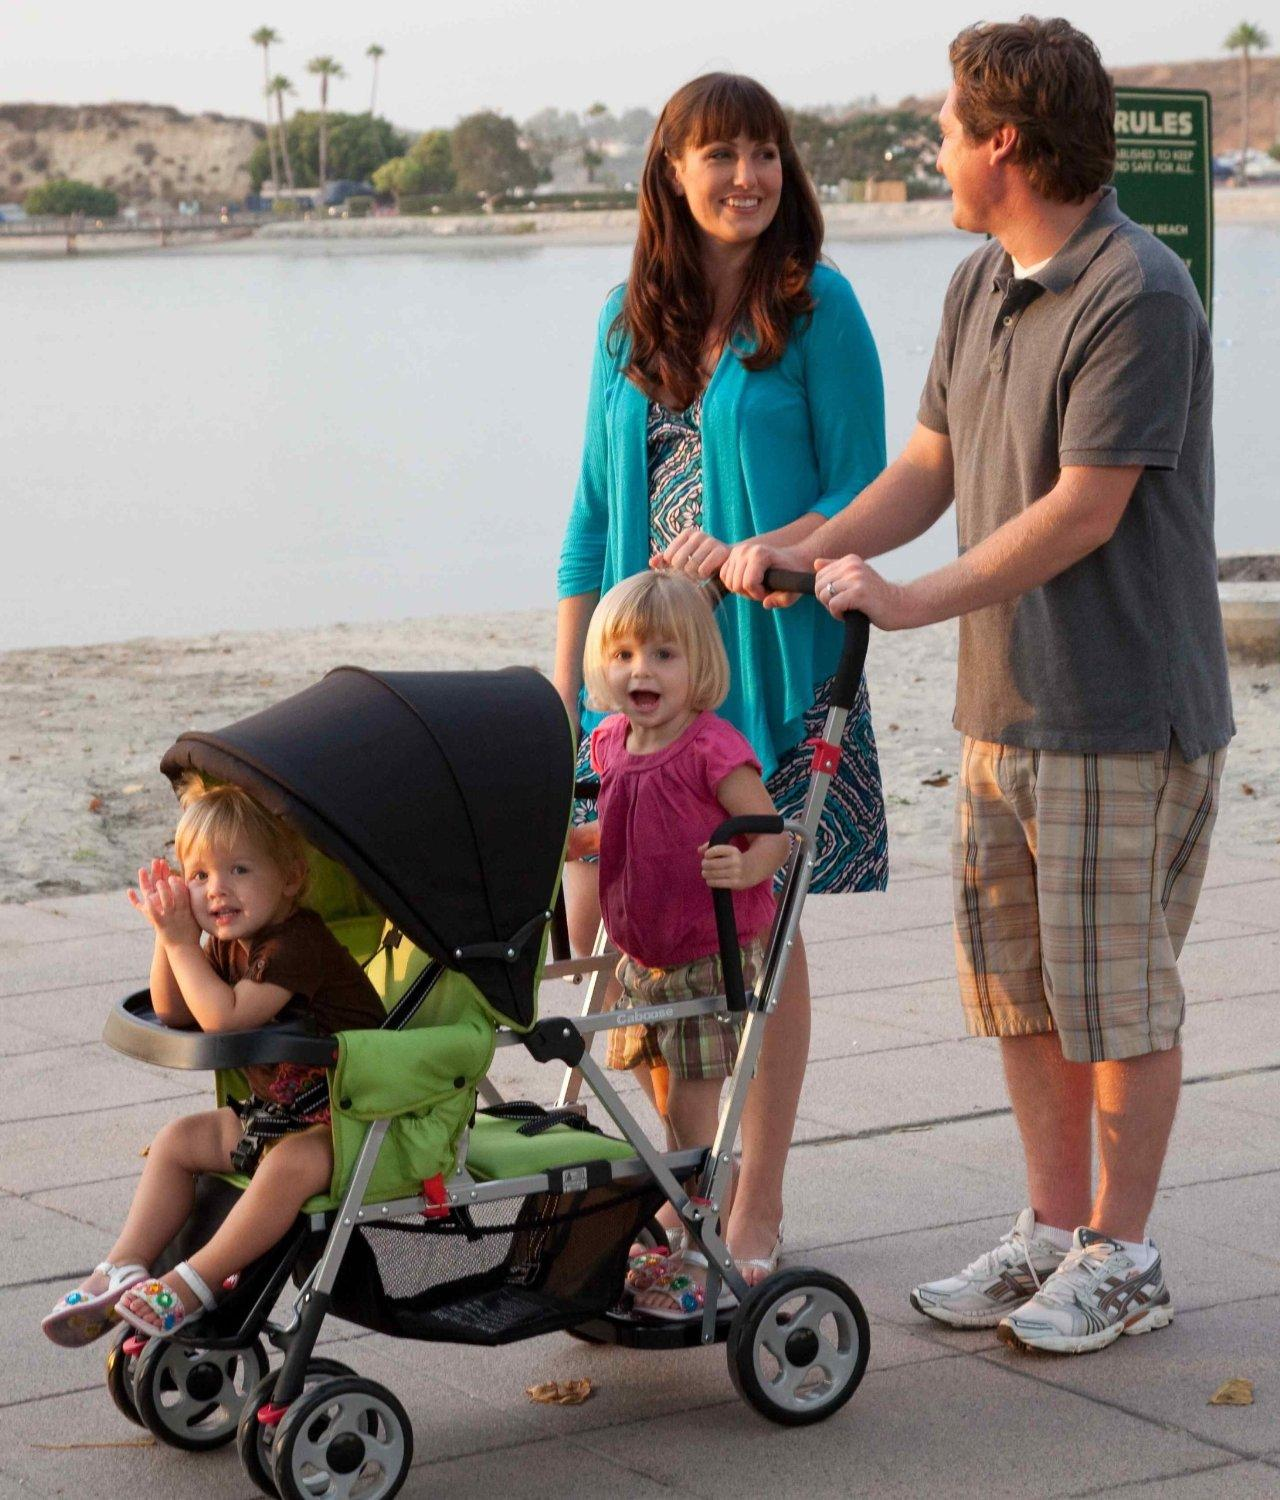 Baby on the Wheel! Best Sellers of Baby Stroller Products @Amazon